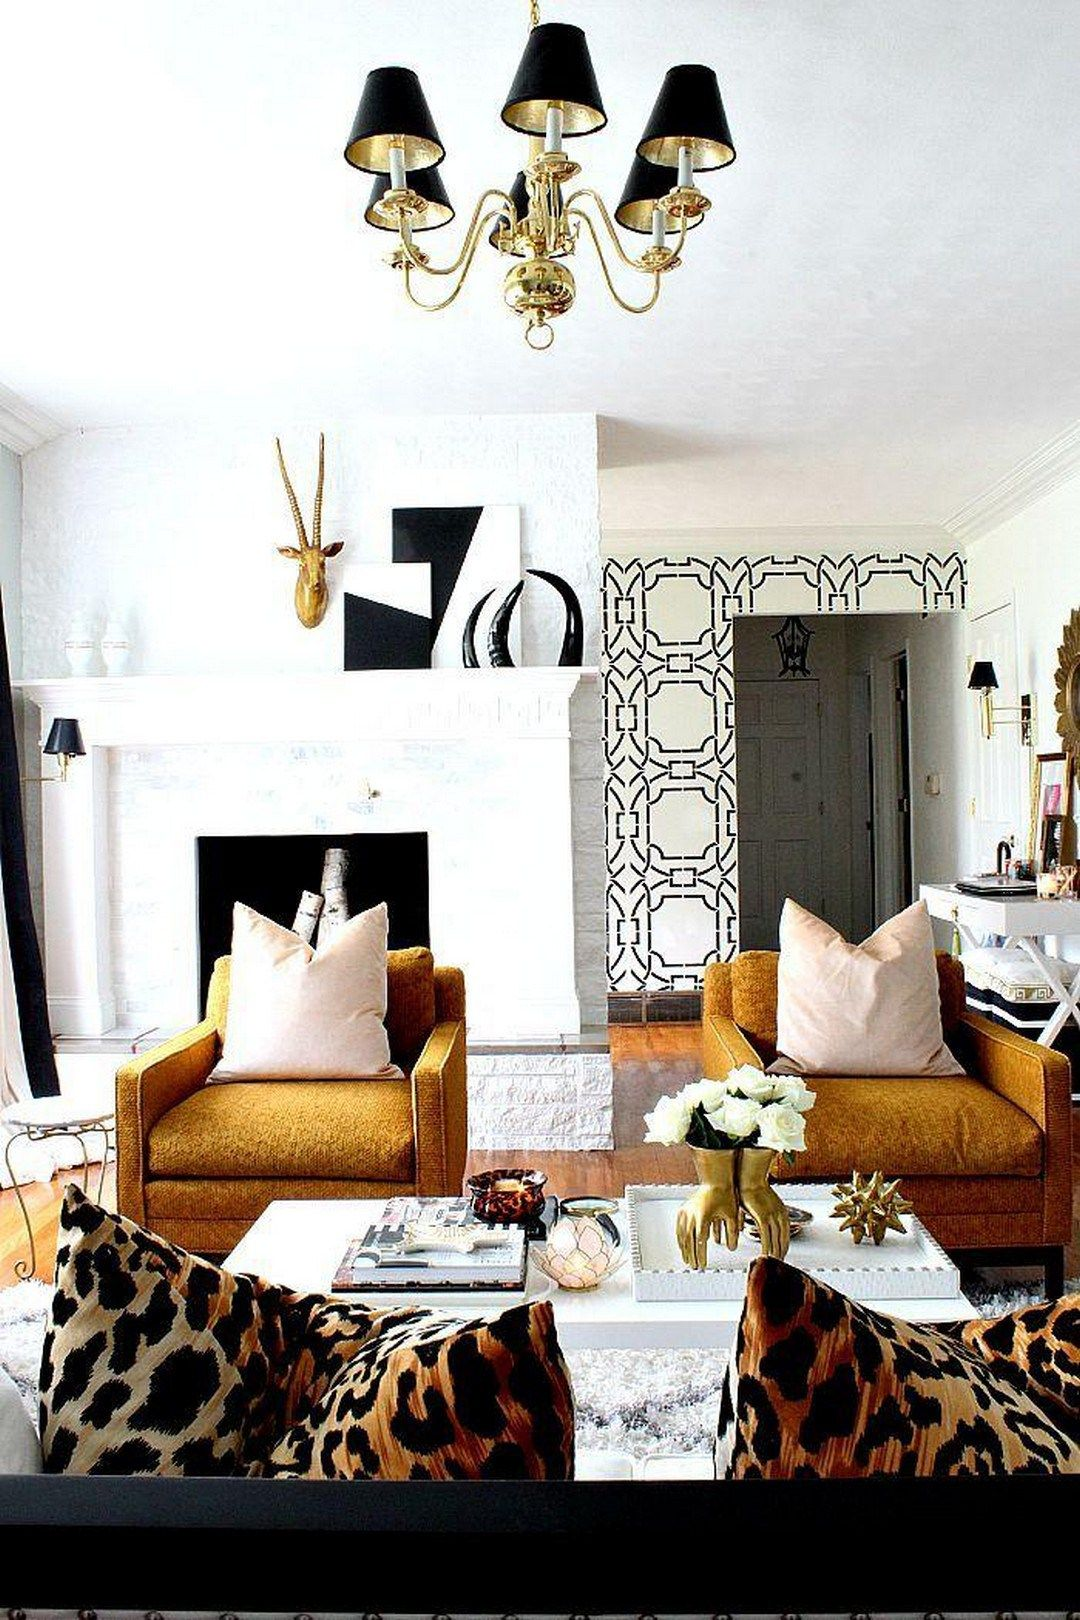 99 Creative Ideas For Modern Decor With Afrocentric African Style (9)